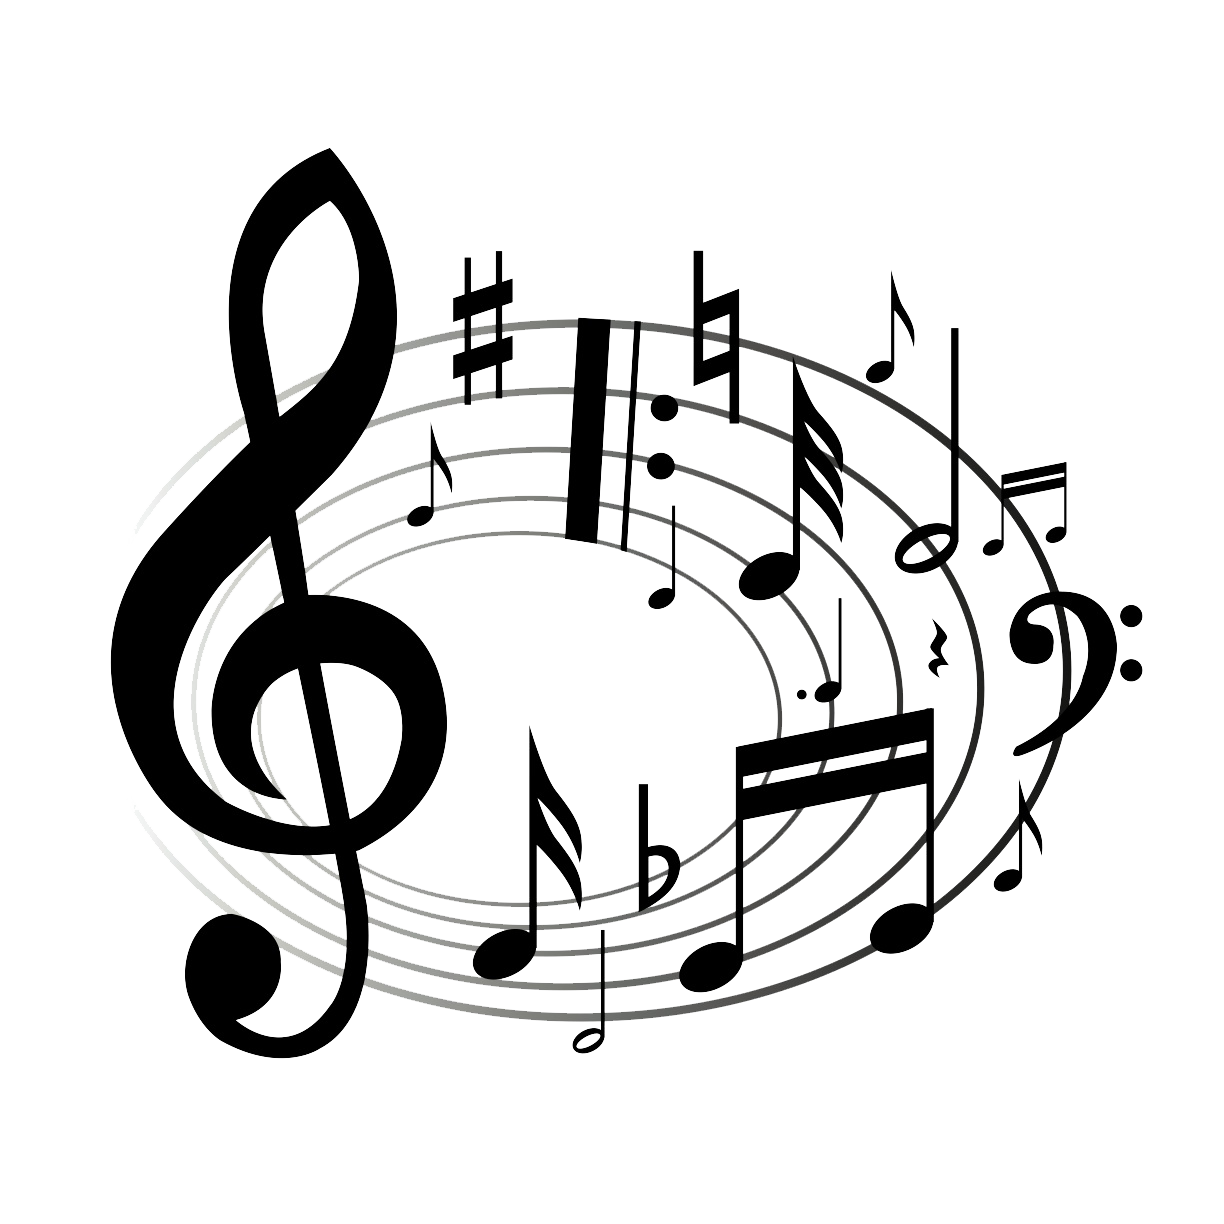 Christmas music clipart black and white graphic free stock Music Notes Clipart Black And White | Clipart Panda - Free Clipart ... graphic free stock